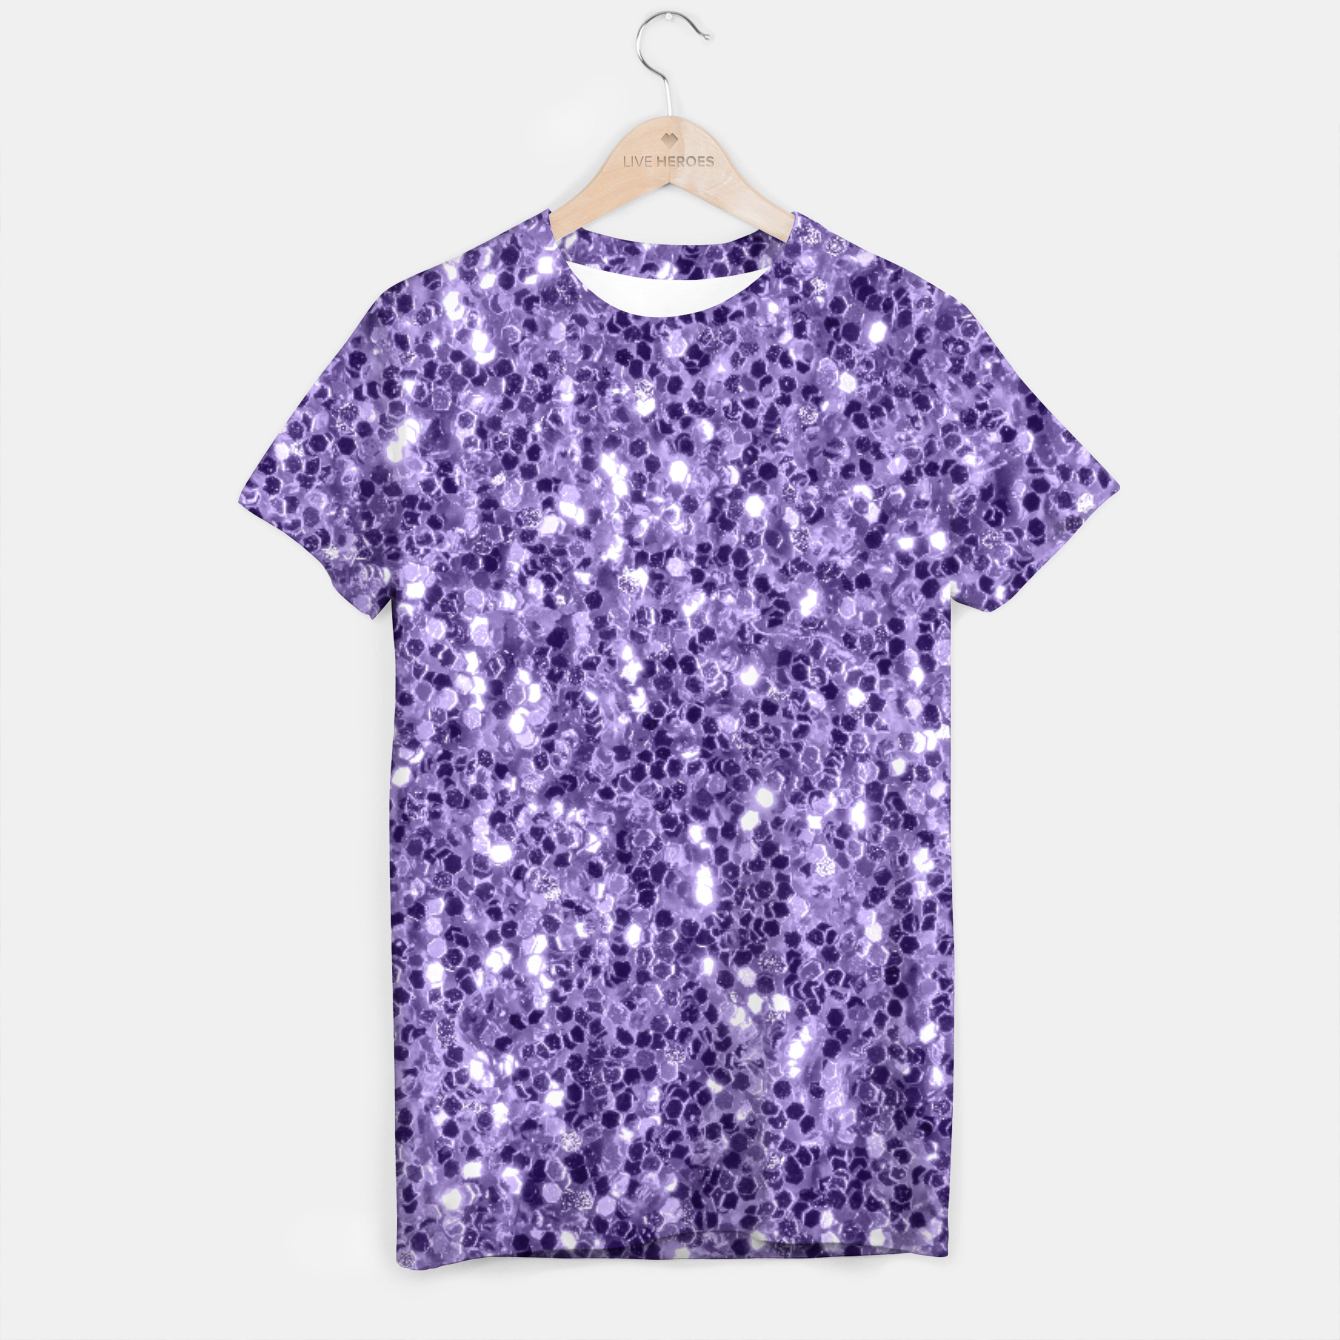 Image of Ultra violet purple glitter sparkles T-shirt - Live Heroes